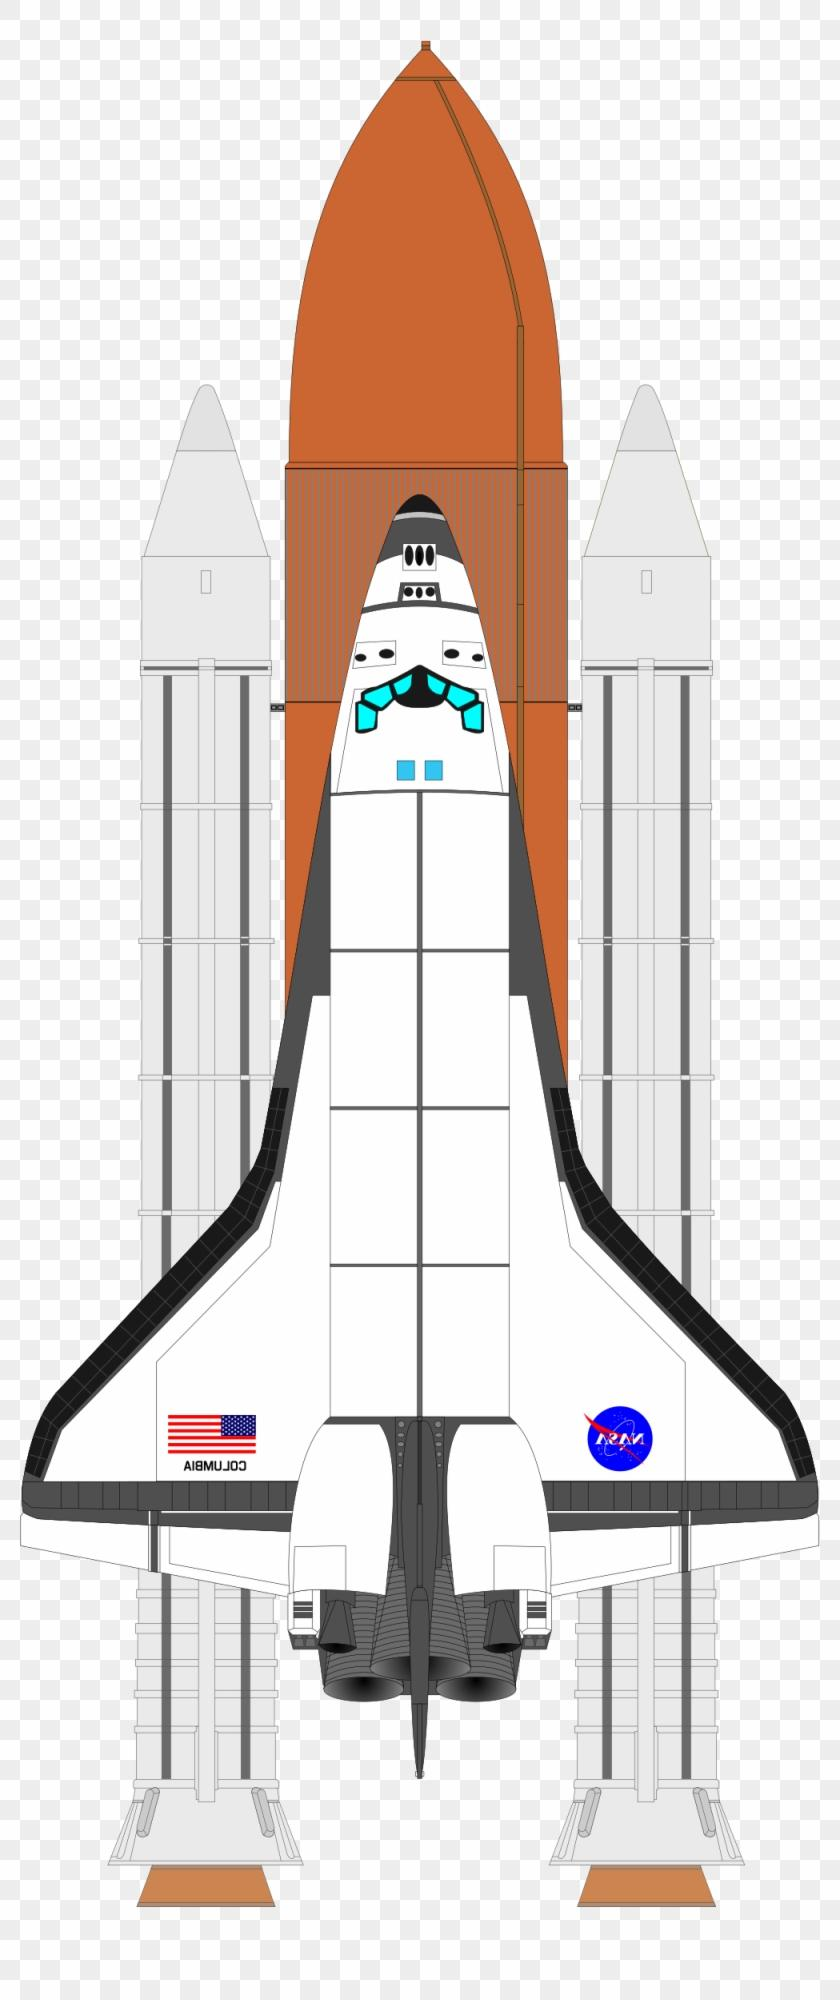 Suttle clipart clipart royalty free library Best HD Space Shuttle Cartoon Clip Art Photos » Free Vector ... clipart royalty free library